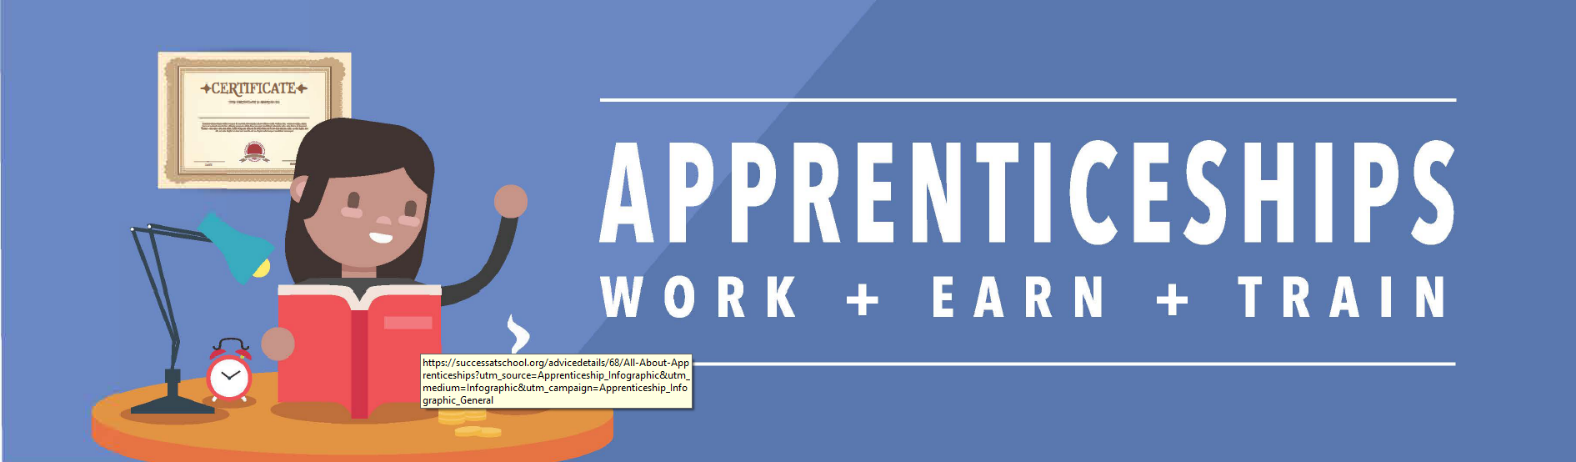 Apprenticeships Image.png